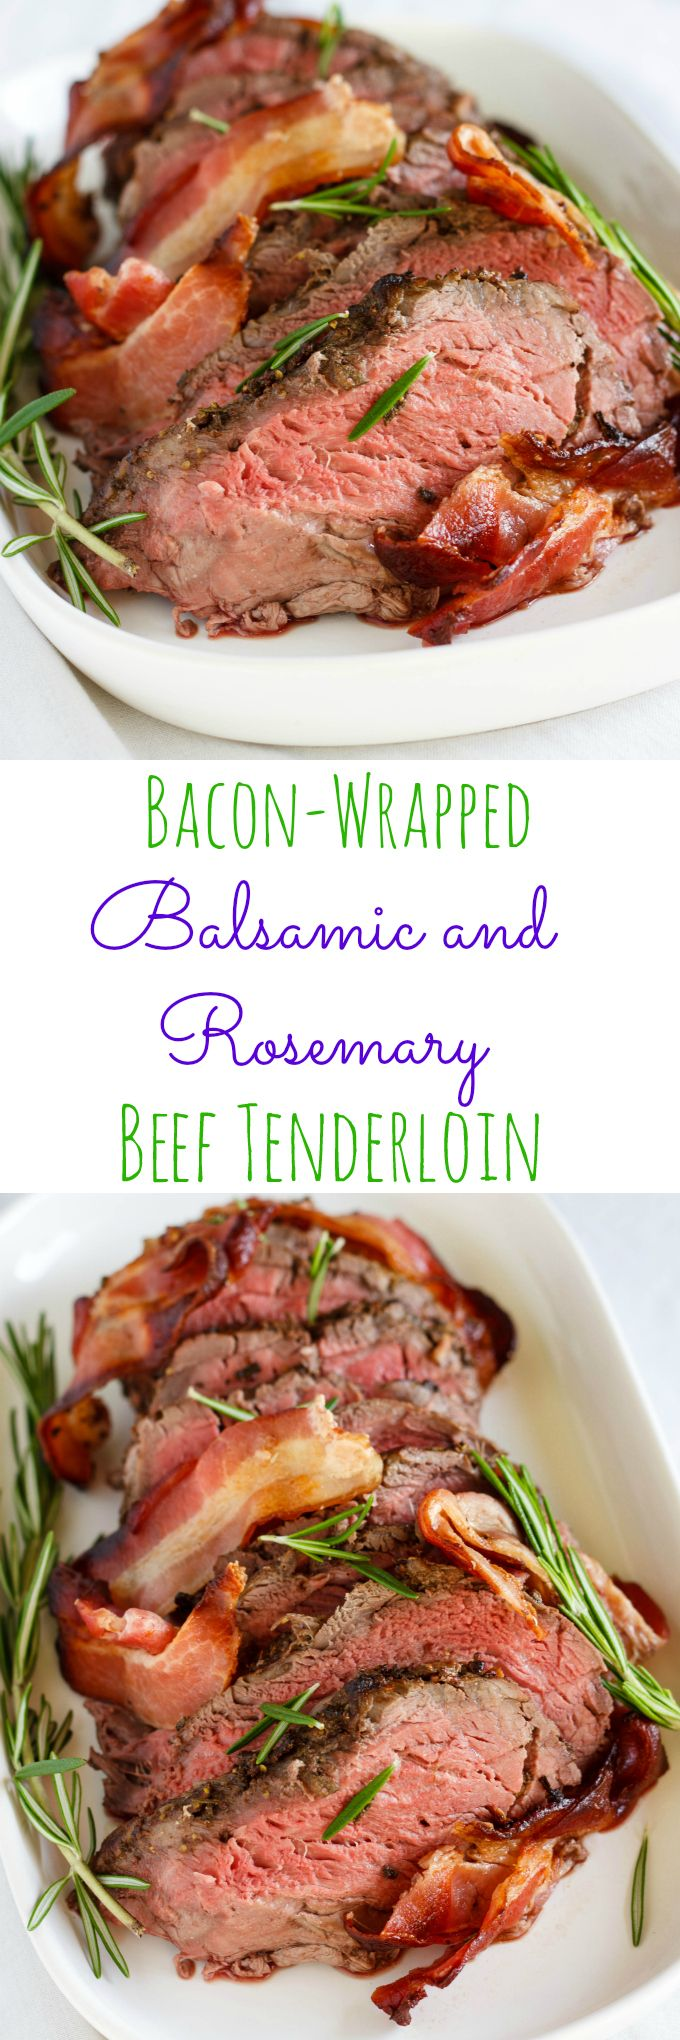 Bacon-Wrapped Balsamic and Rosemary Beef Tenderloin | http://thecookiewriter.com | #beef #rosemary #Thanksgiving #dinner #bacon